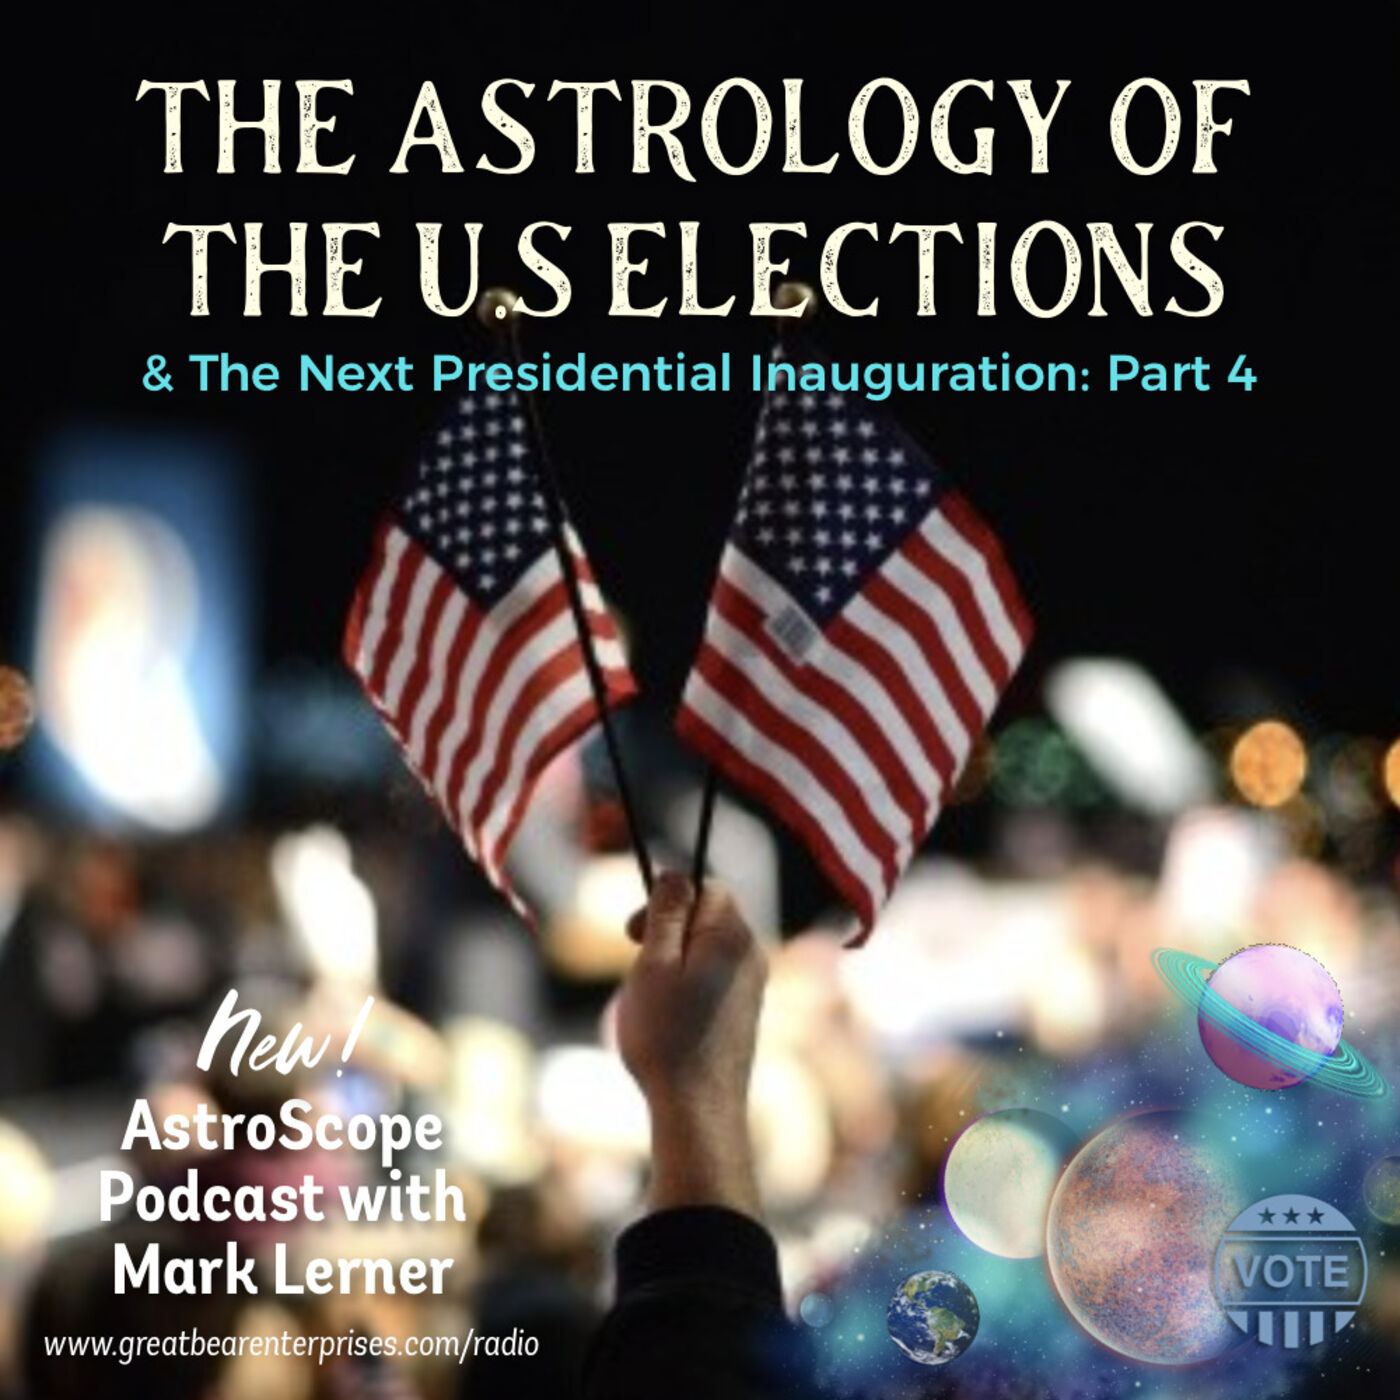 The Astrology of the 2020 U.S. Elections & the Next Presidential Inauguration: Part 4